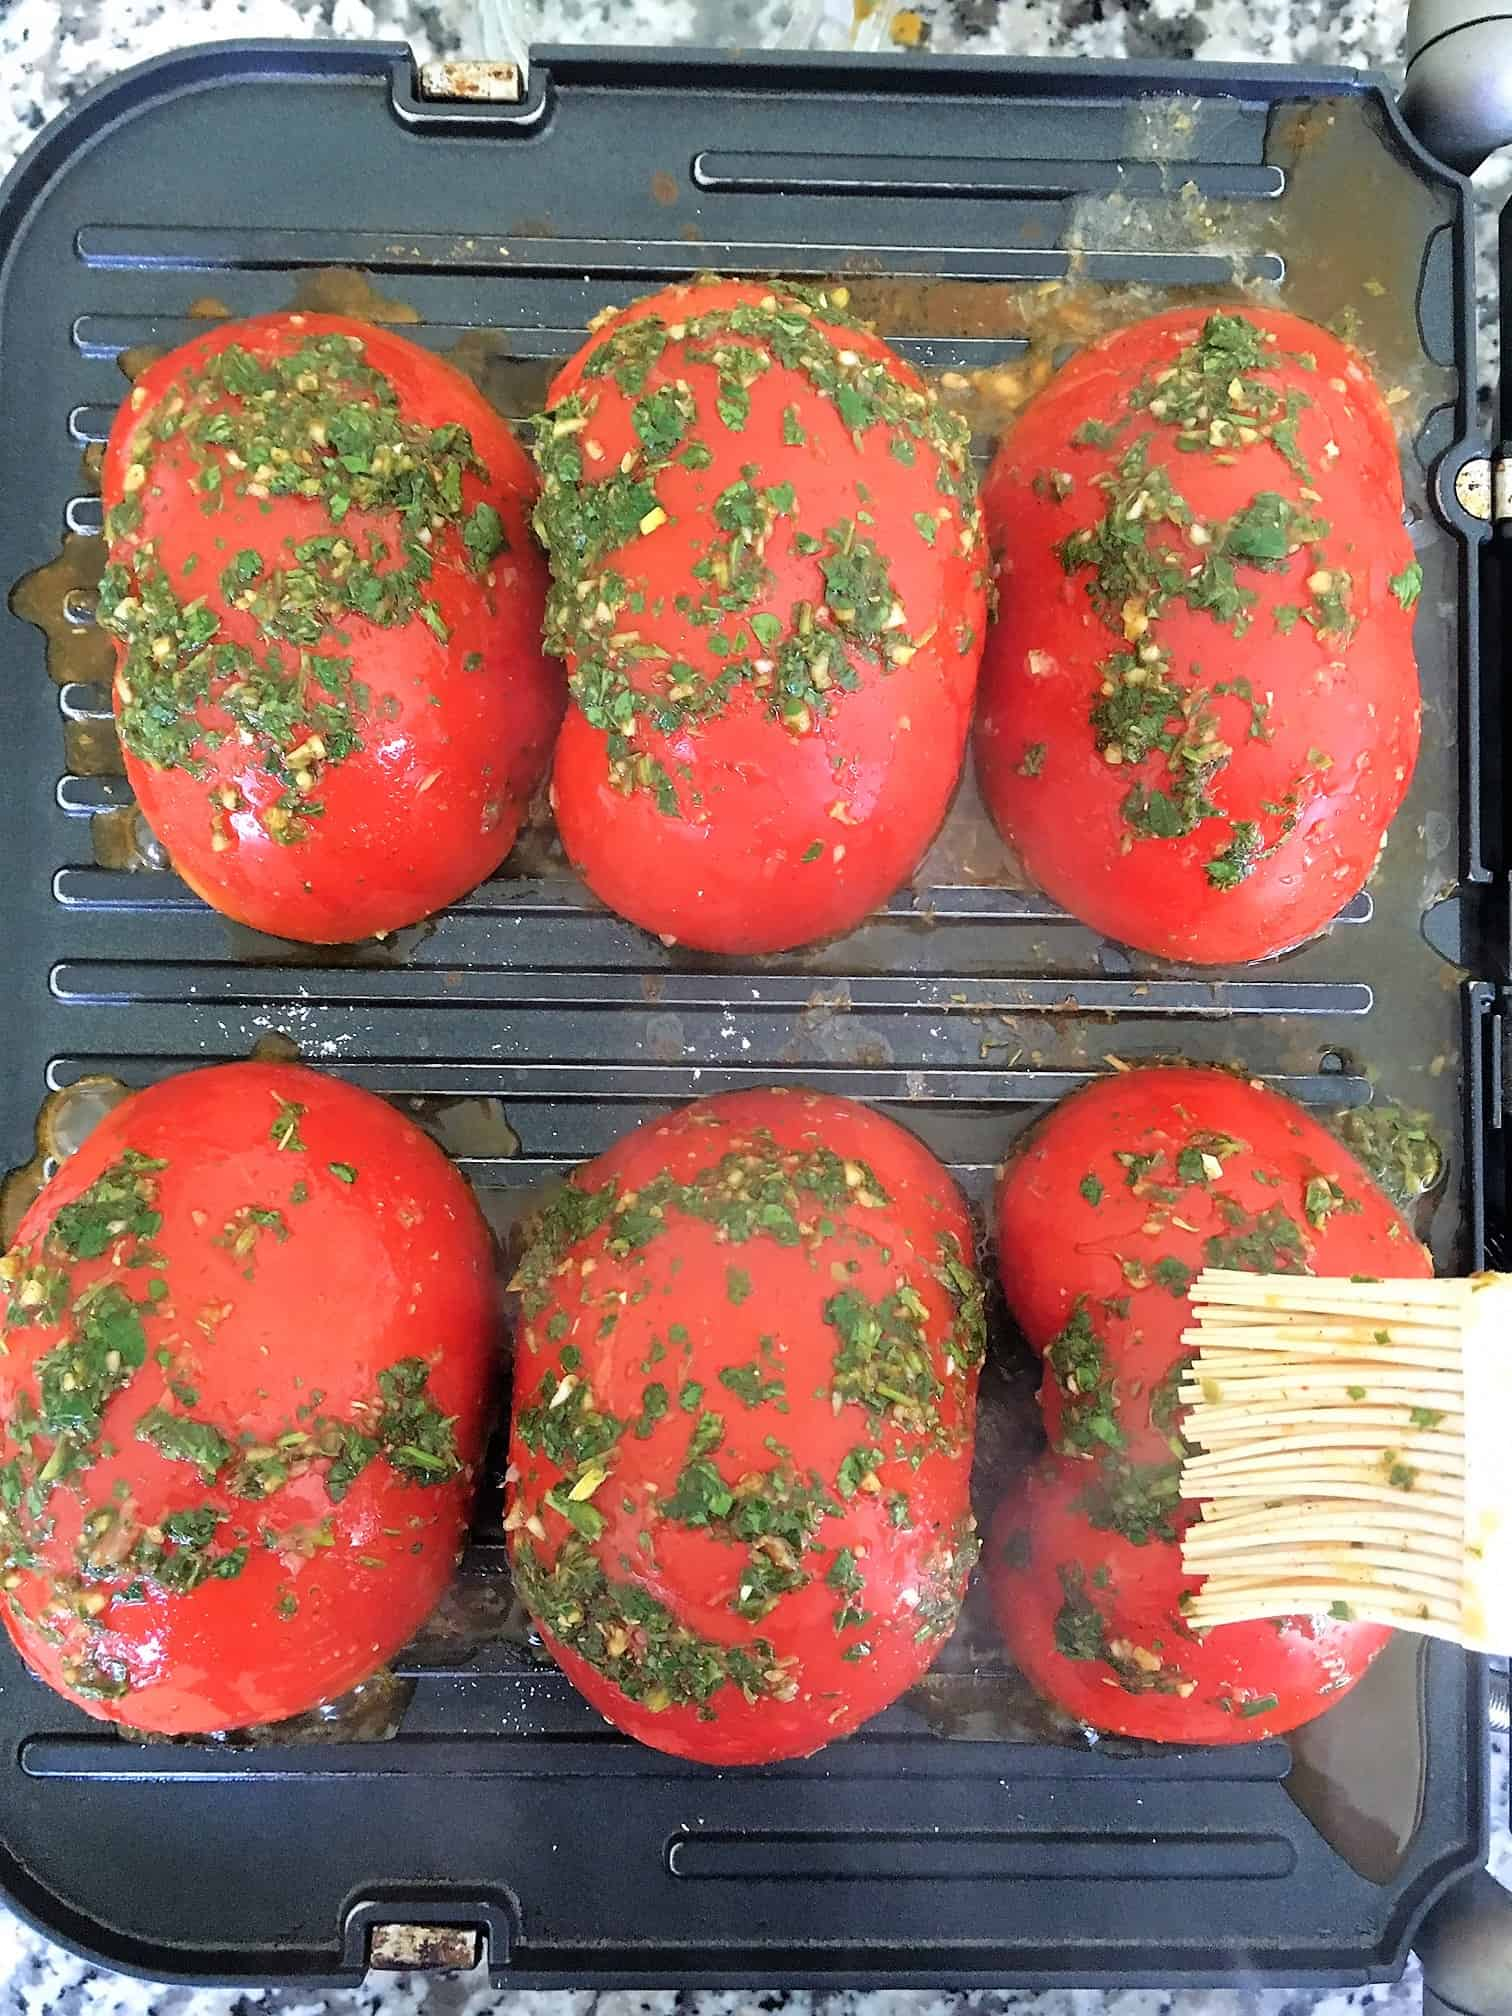 Halved tomatoes on grill being brushed with chimichurri sauce.